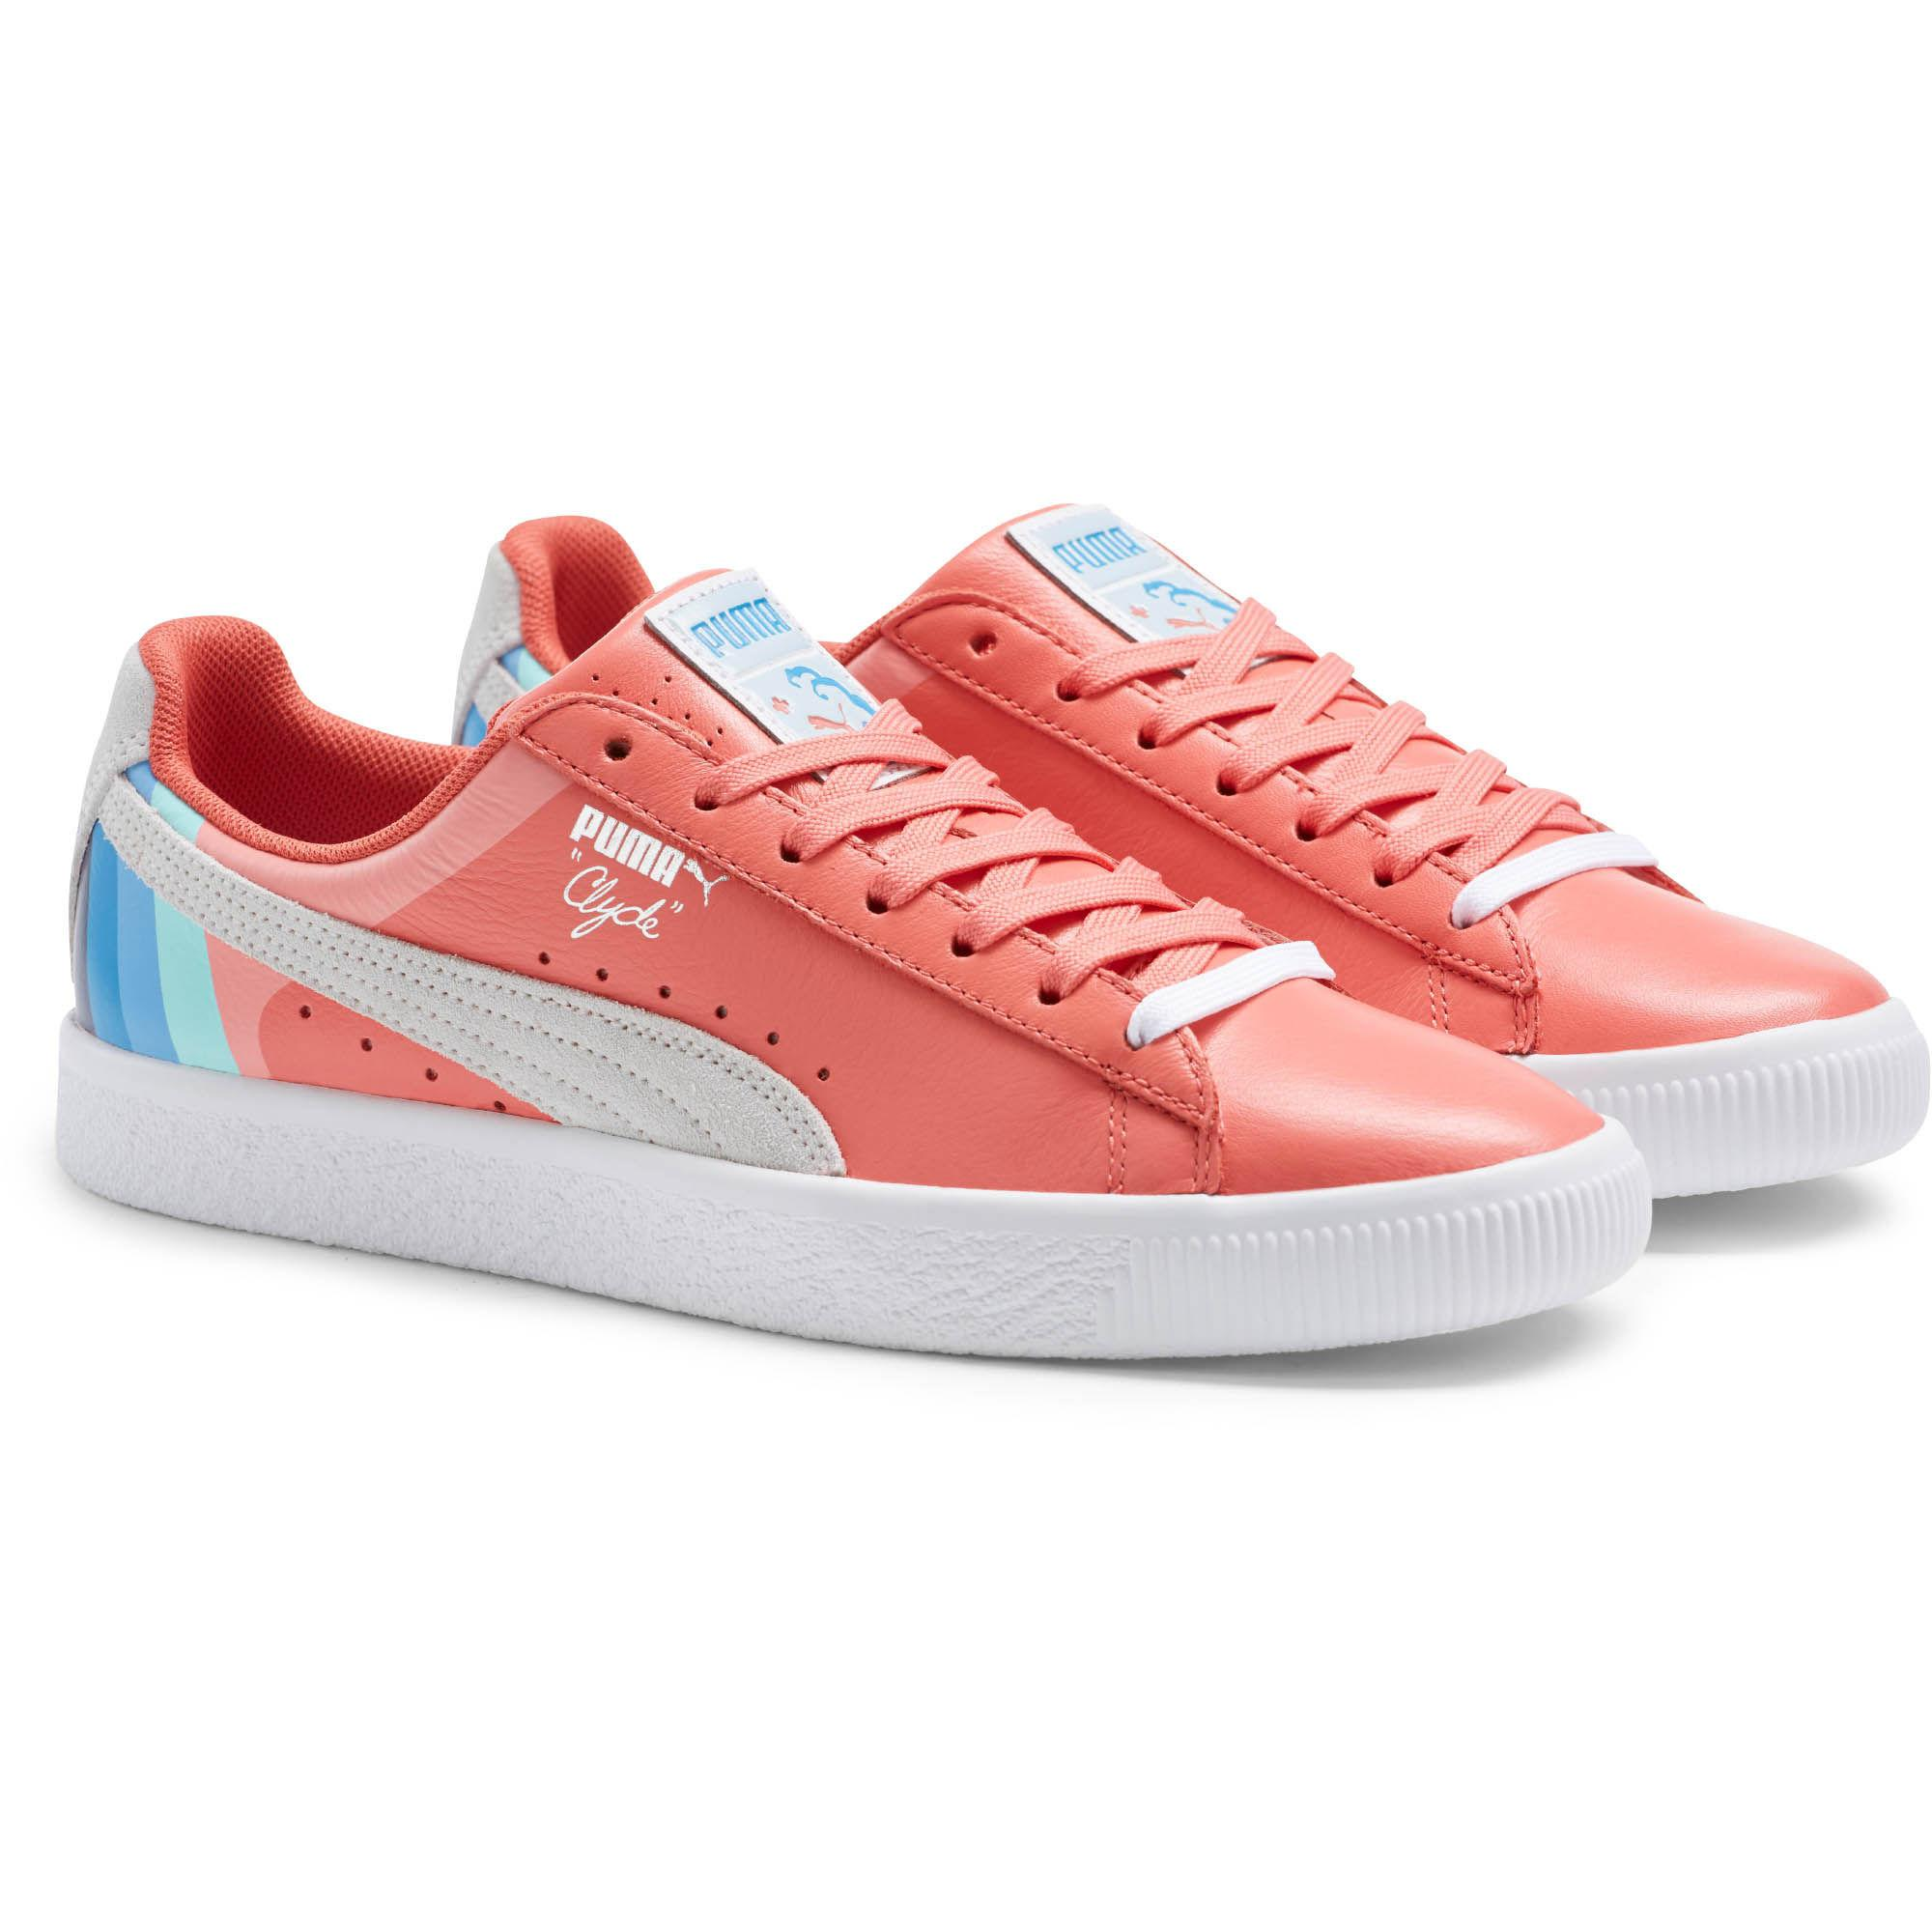 buy online 645aa 1cb7a PUMA Multicolor X Pink Dolphin Clyde Sneakers for men